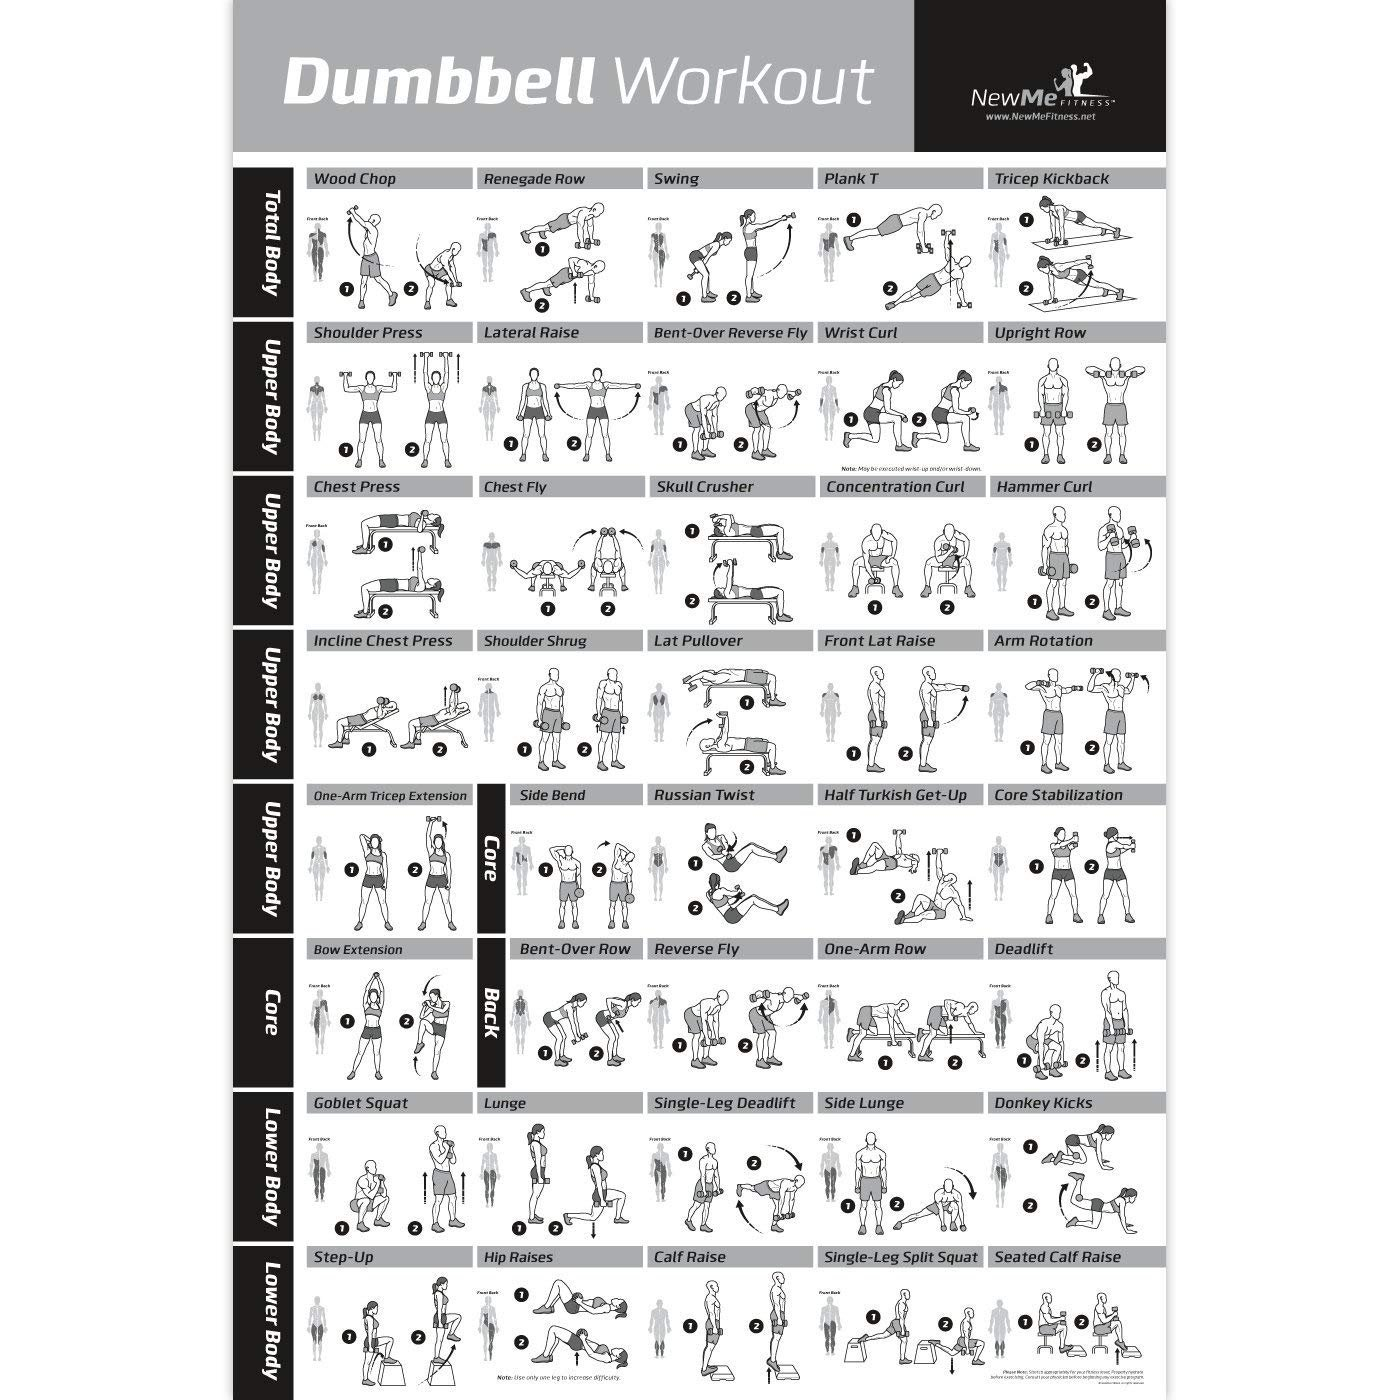 Newme Fitness Dumbbell Workout Exercise Poster 20x30 Inch Multicolour Amazon In Sports Fitness Outdoors